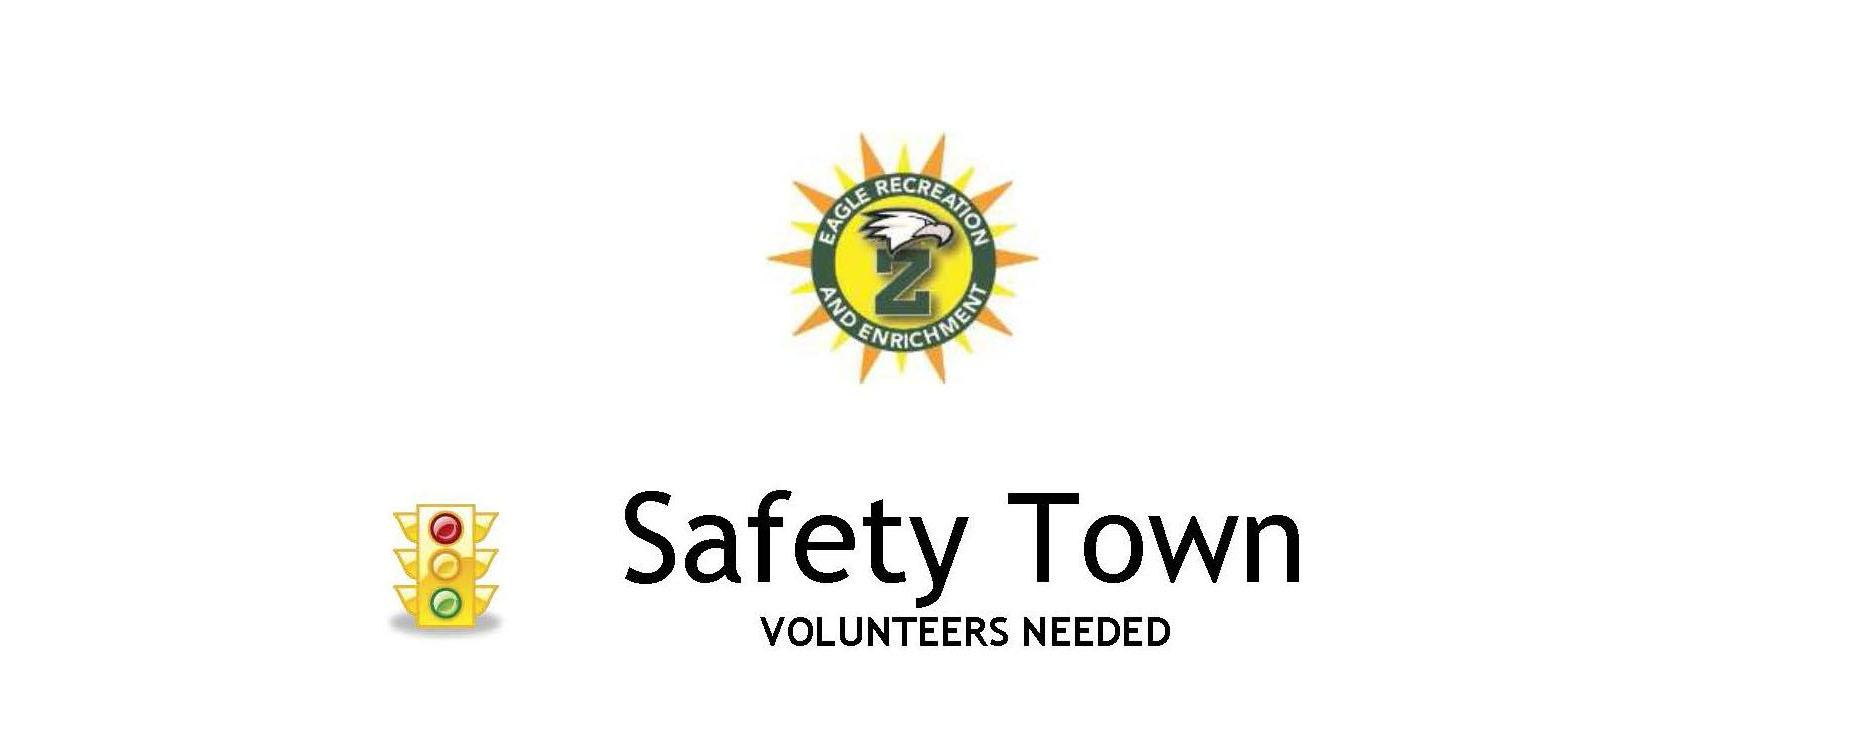 Volunteers Needed for Safety Town